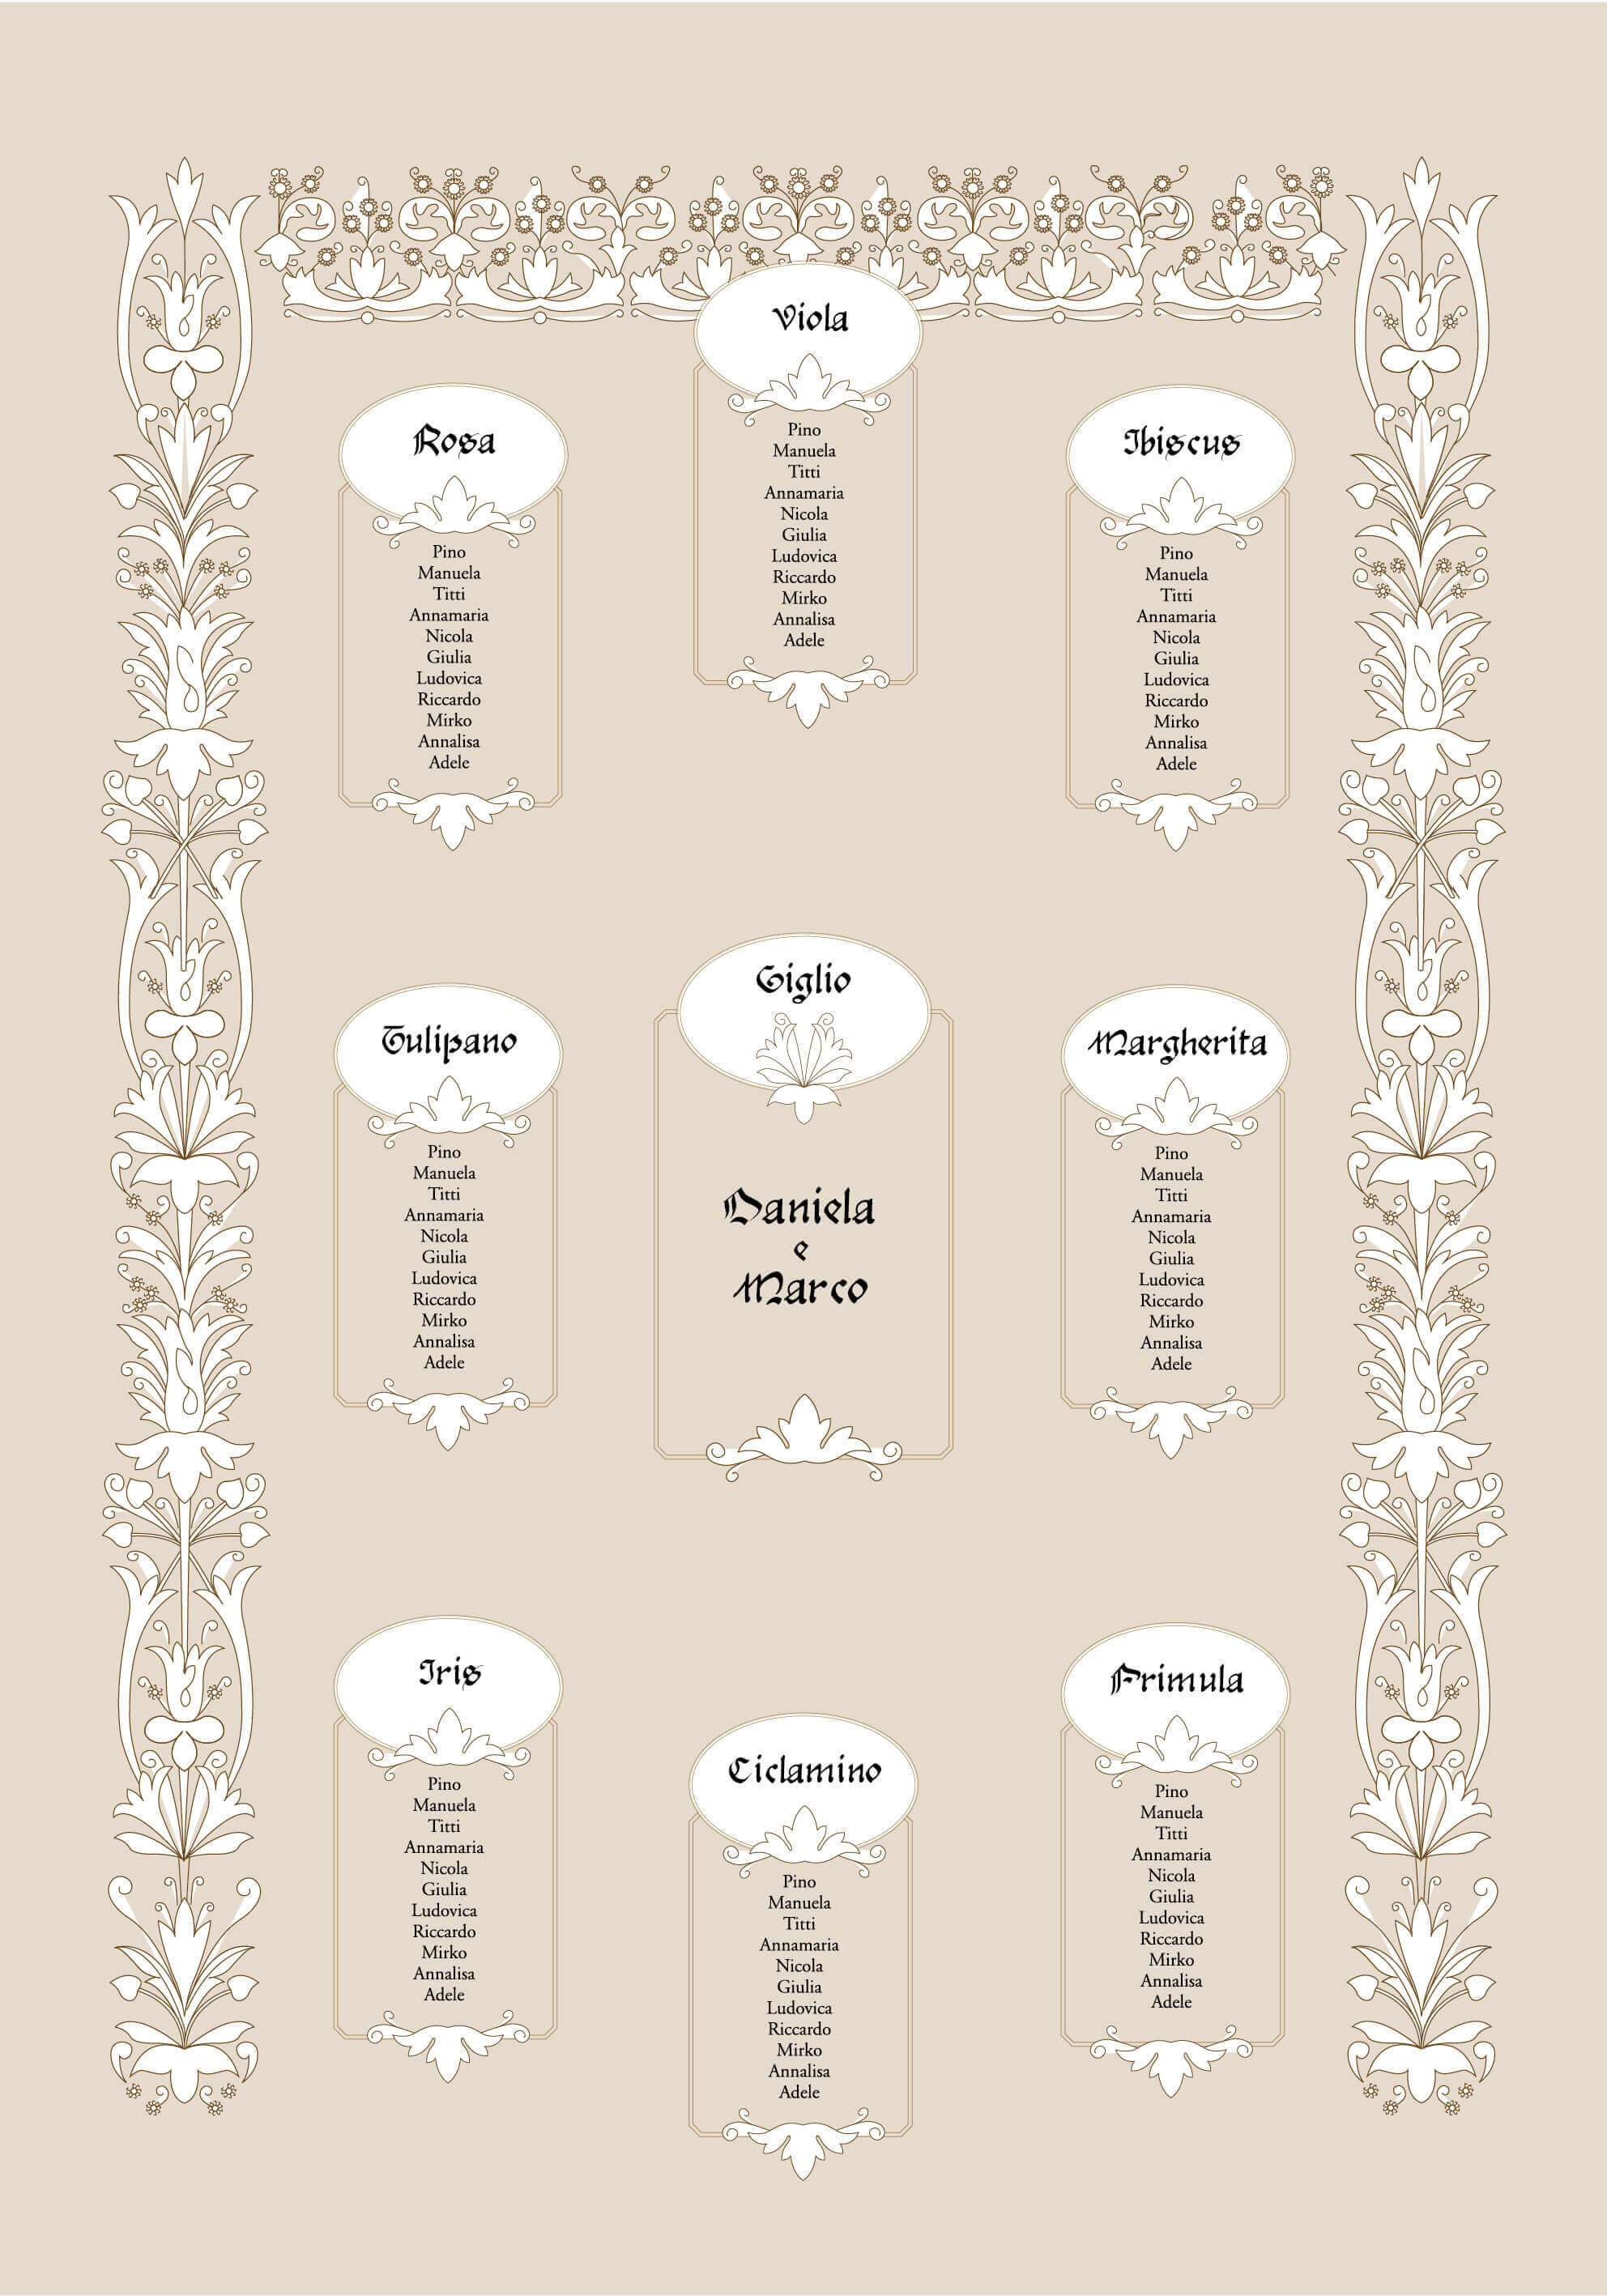 Rino Pensa tableau sposi wedding